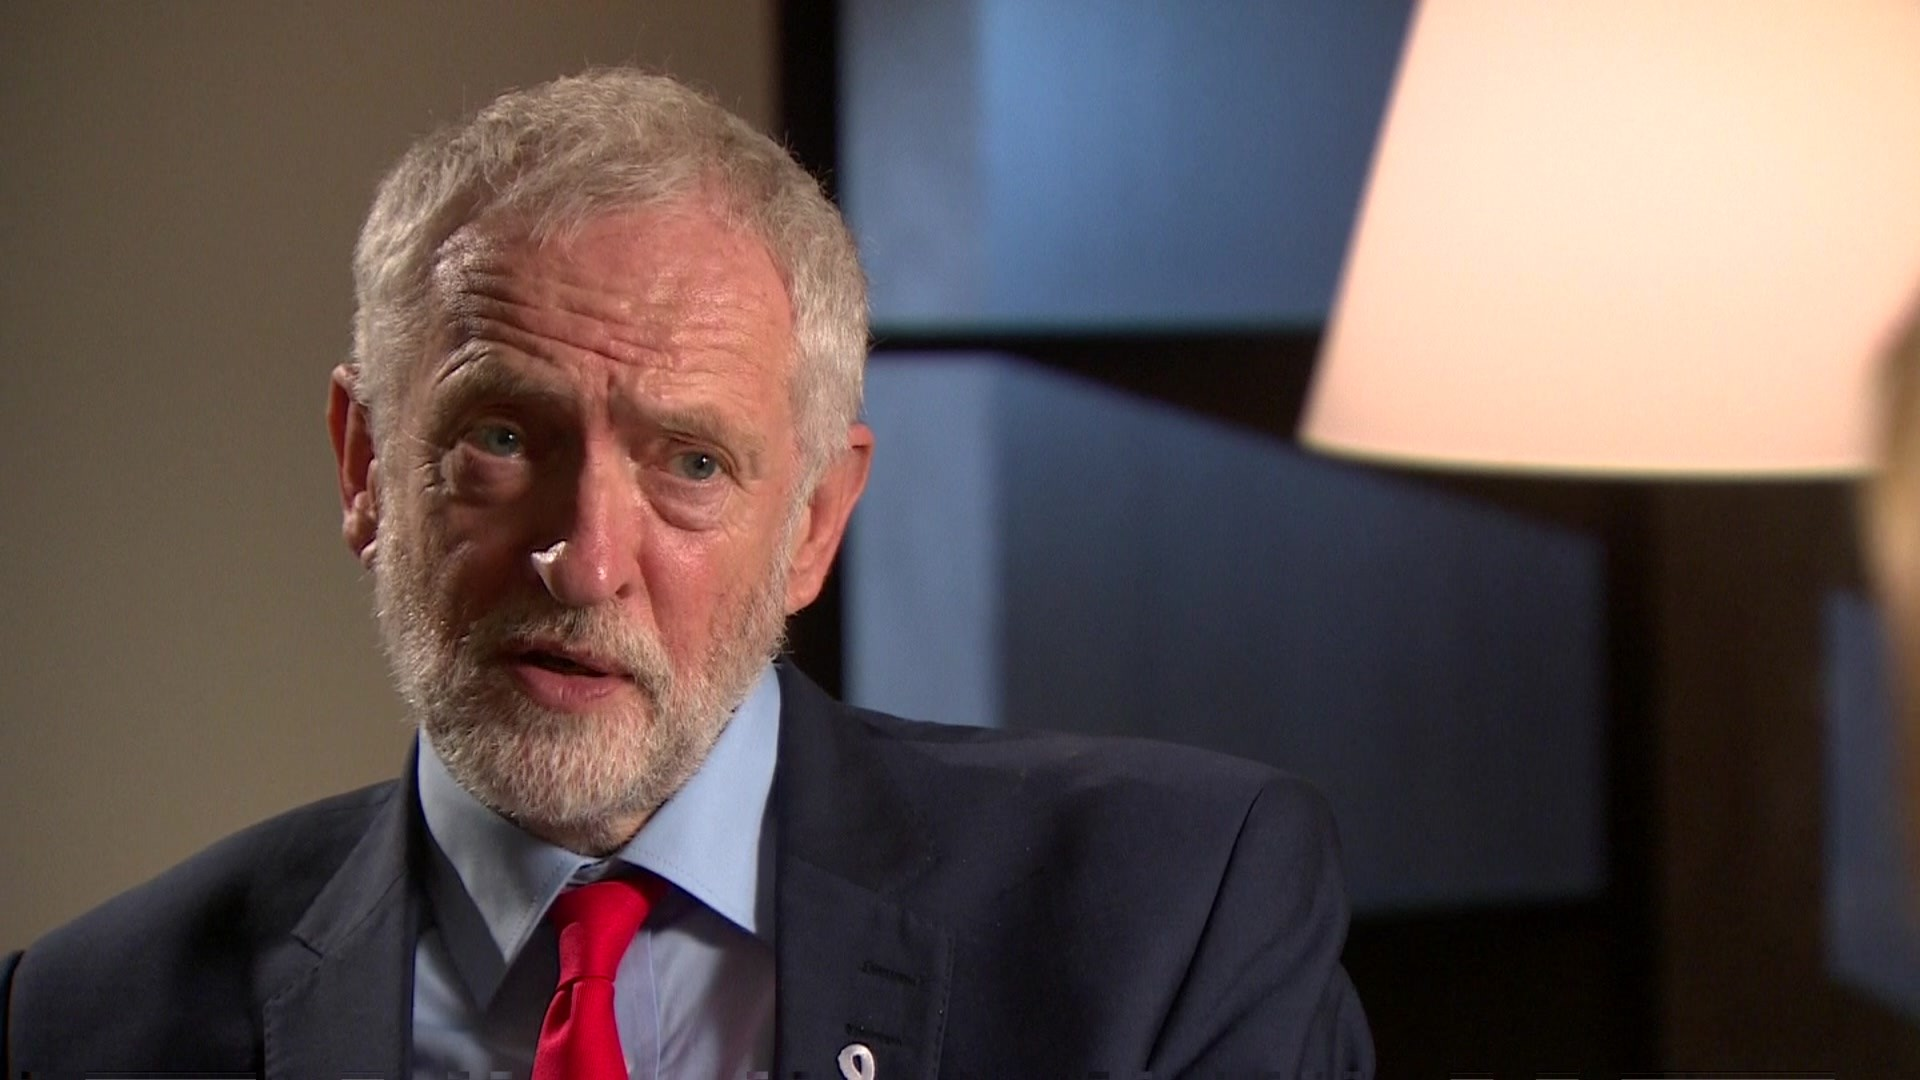 Jeremy Corbyn: I will continue to make anti-Trident case